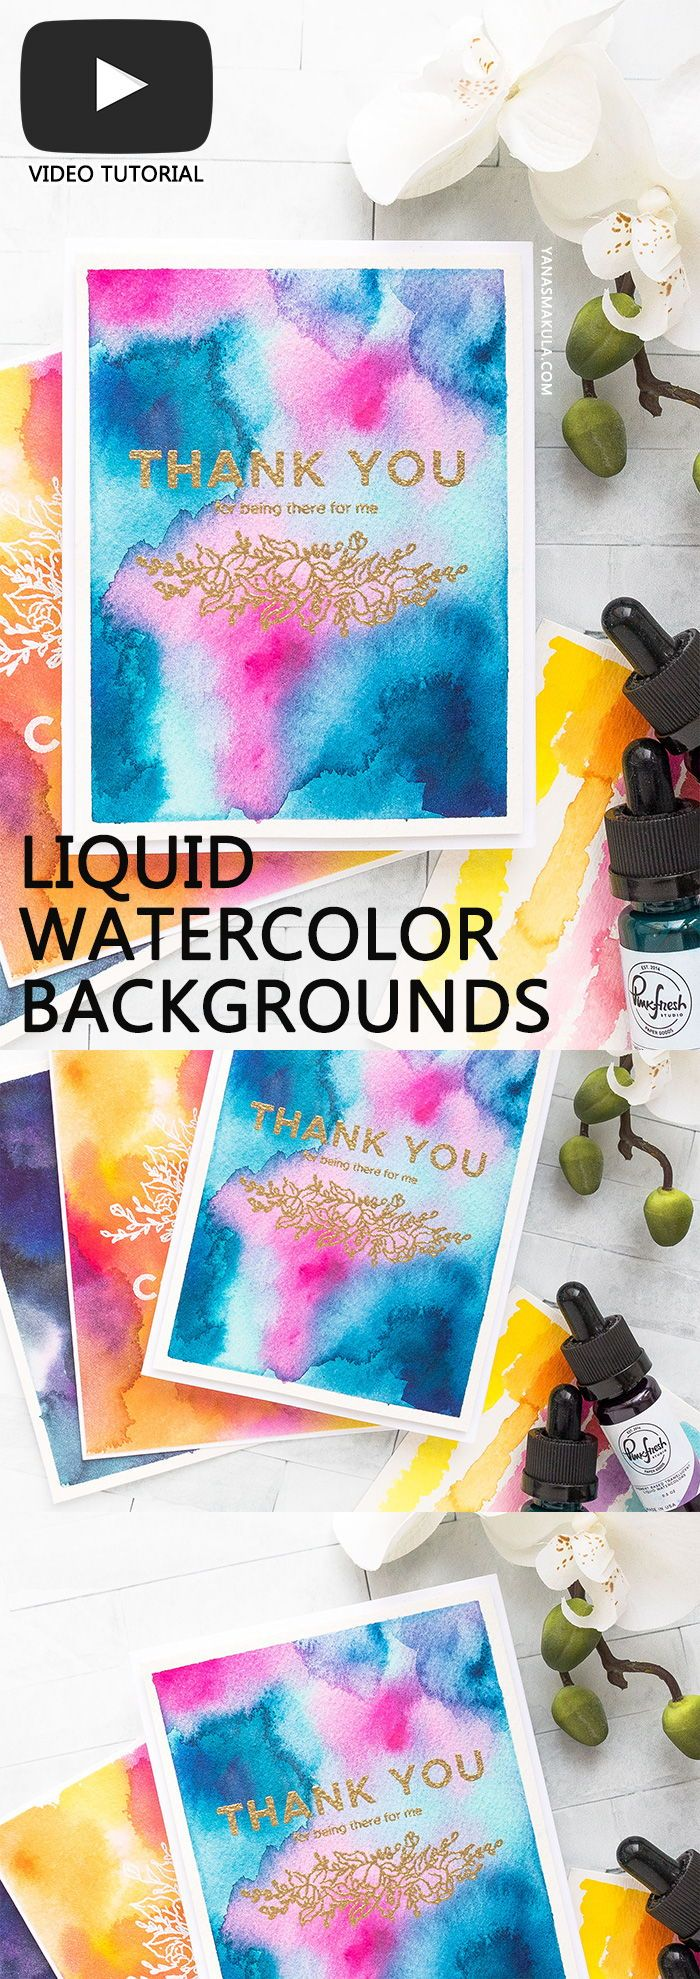 Watercolor Backgrounds With Liquid Watercolors With Pinkfresh